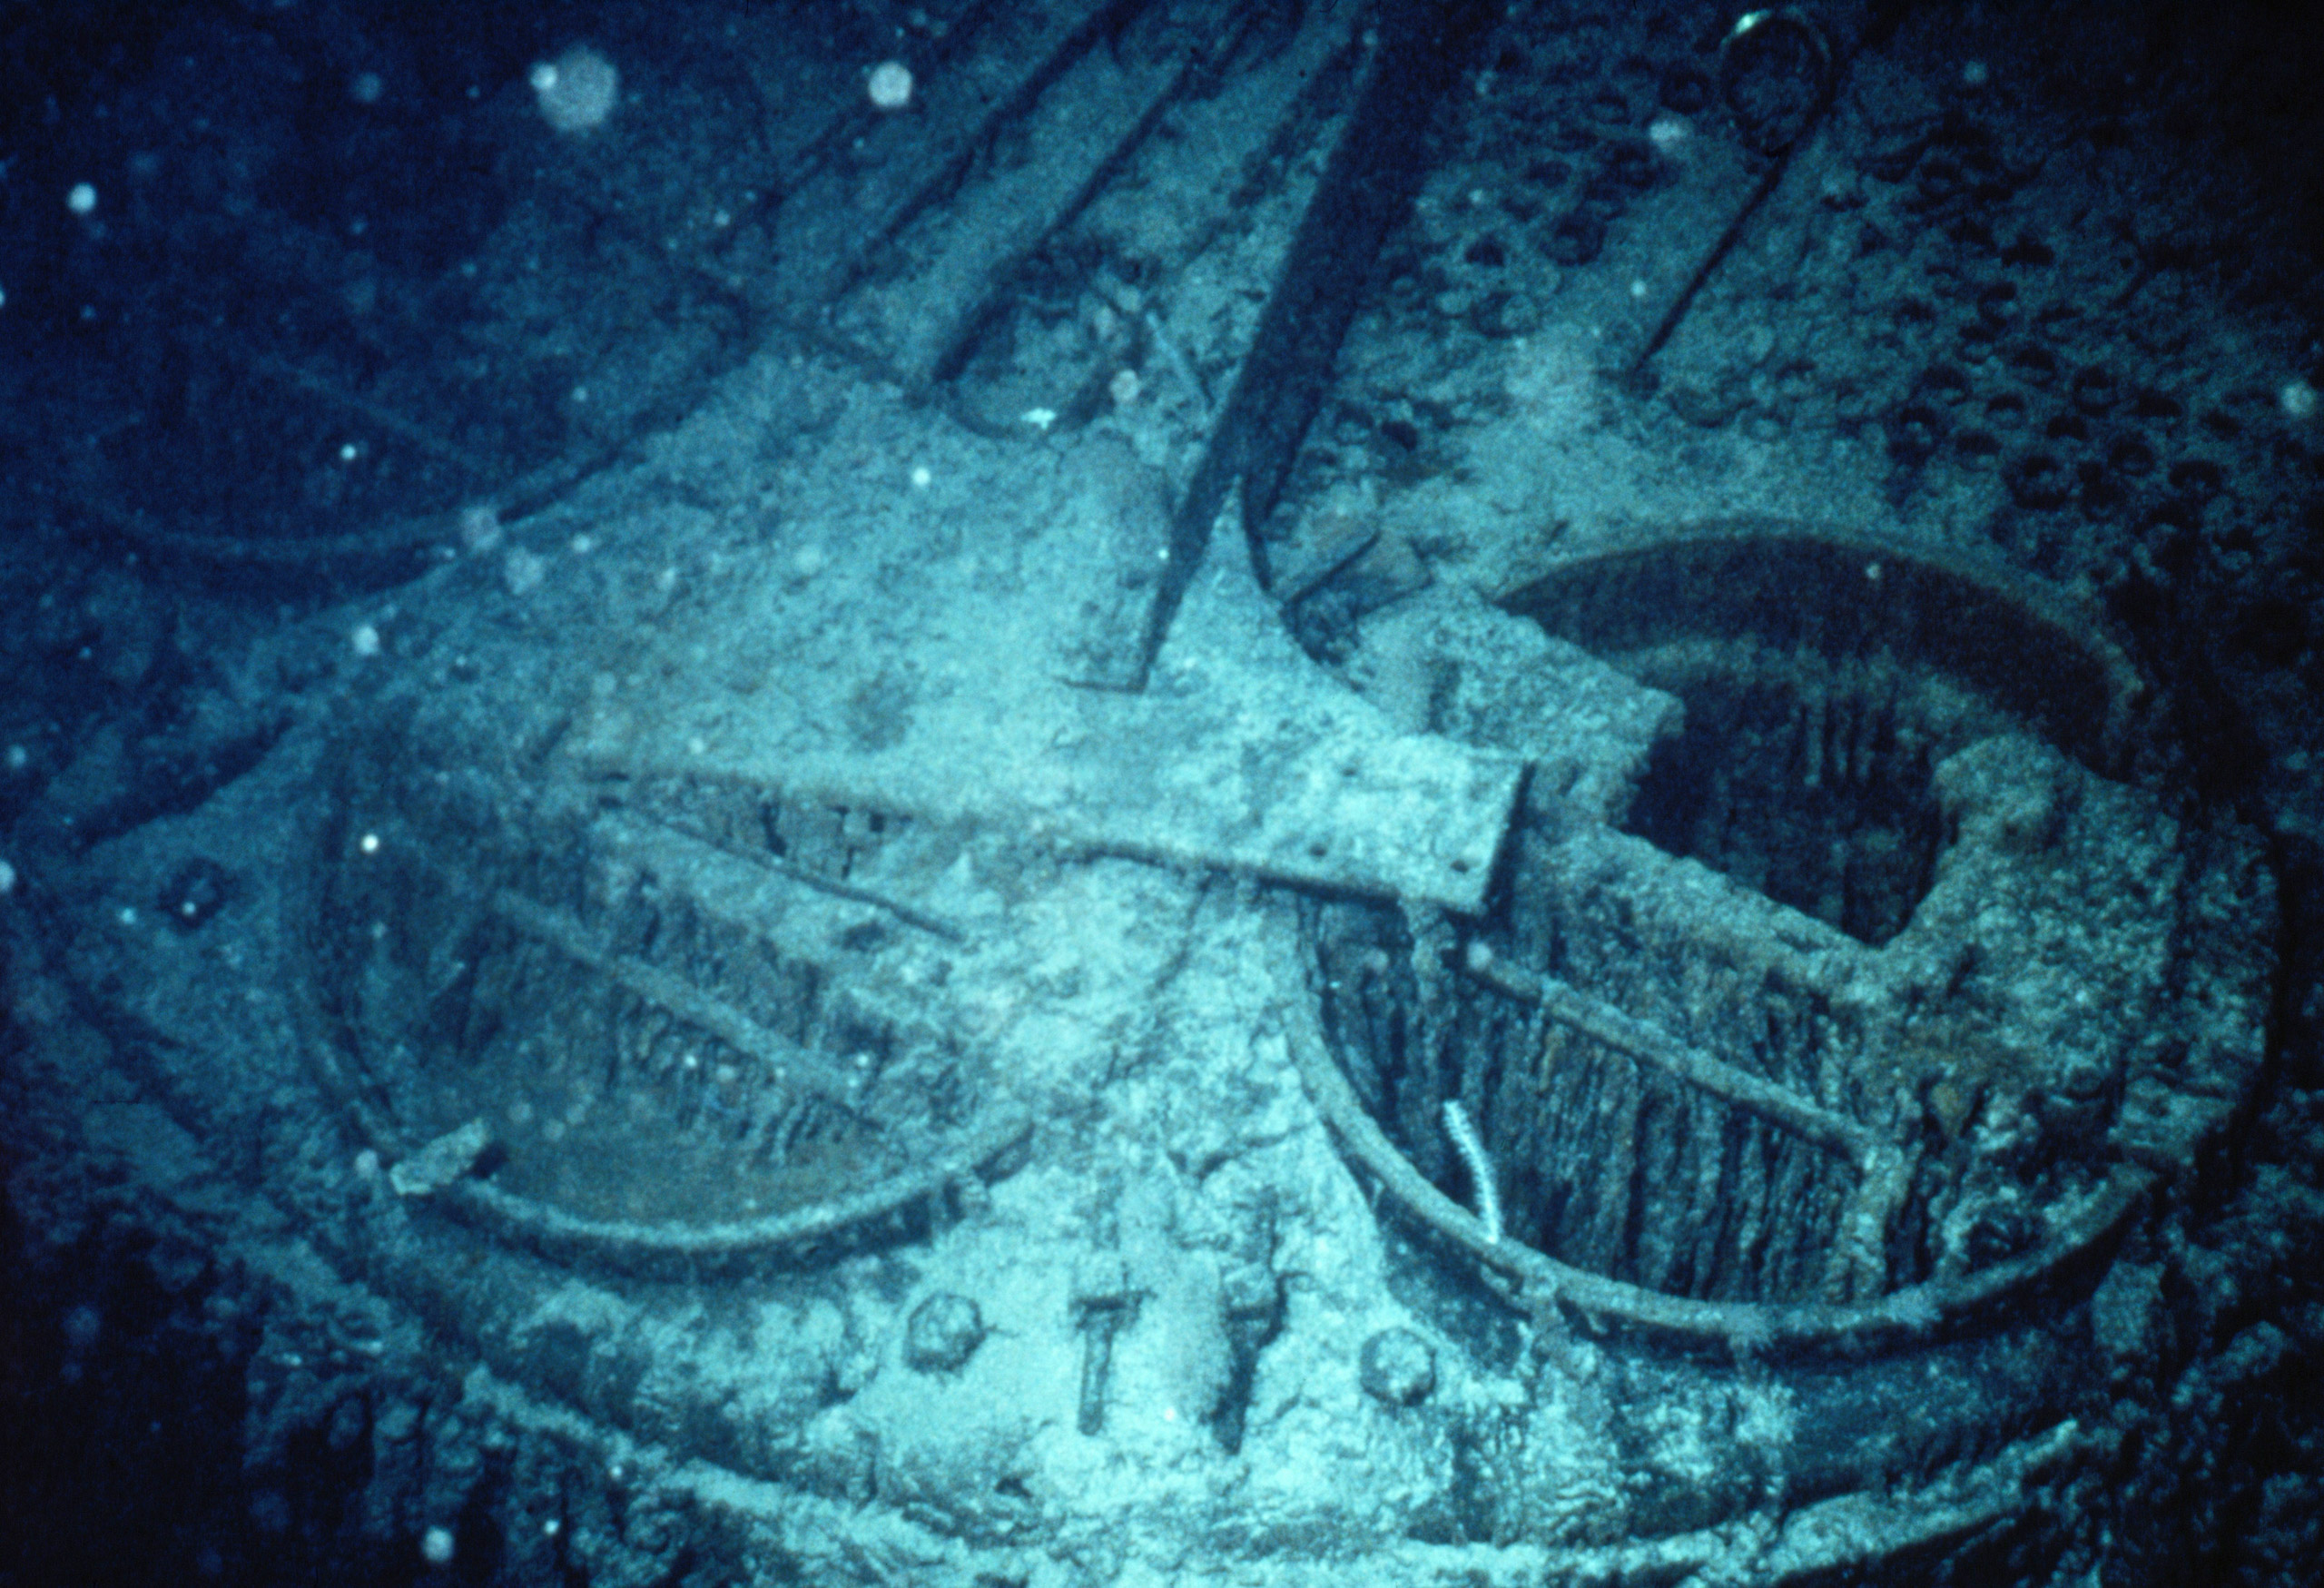 ca.1987-1991 --- The stoking ports of a boiler in the debris field of the shipwrecked Titanic.